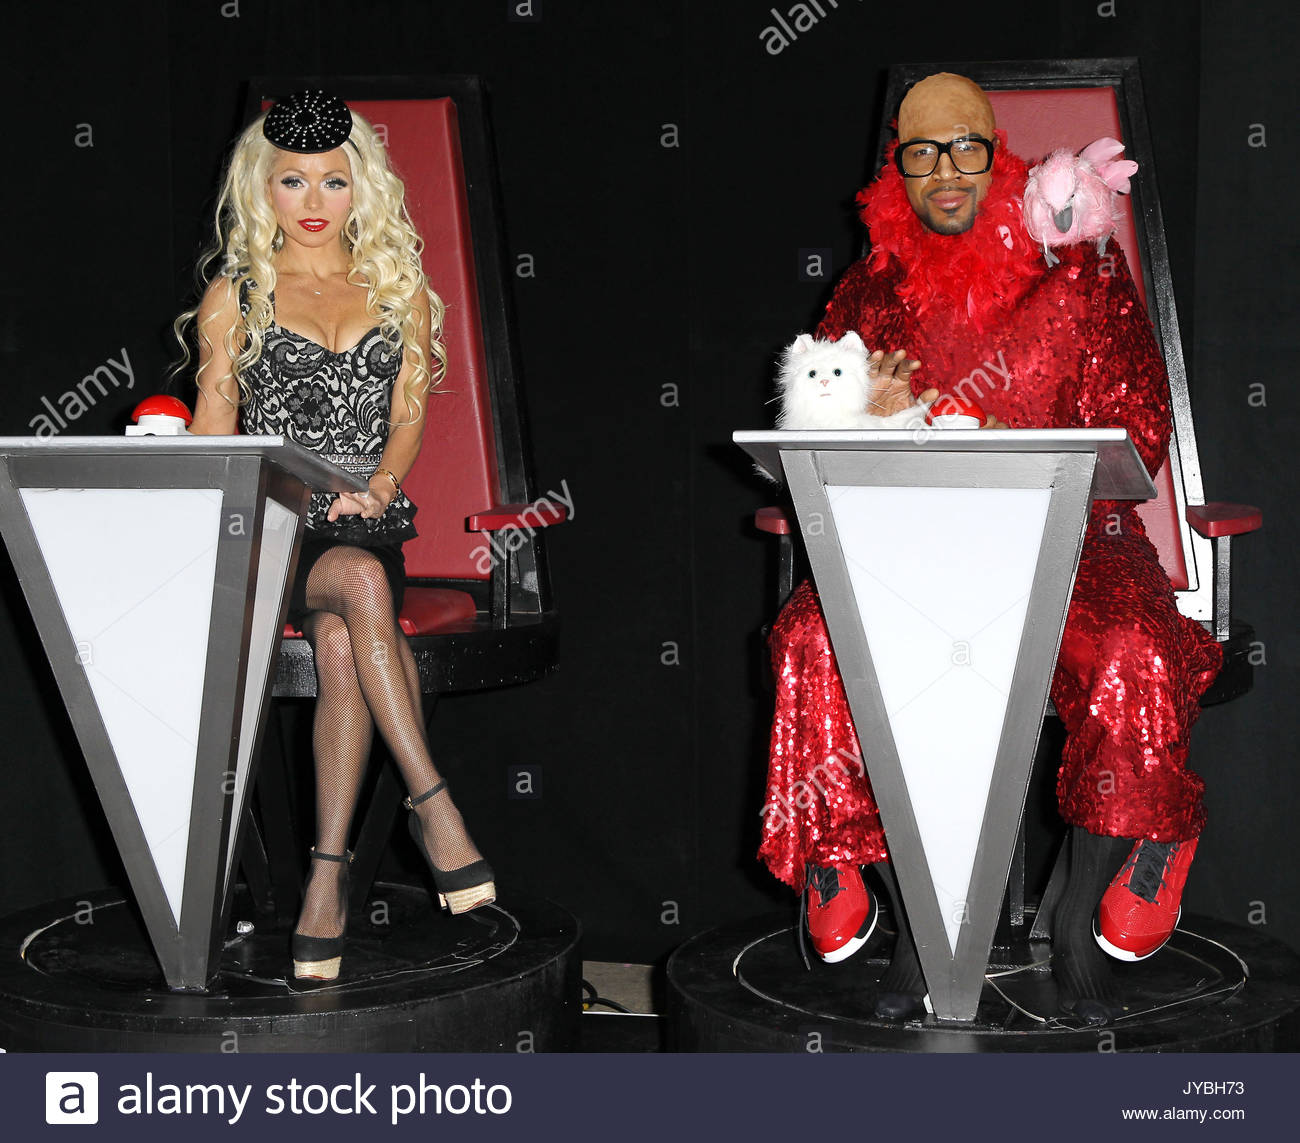 TV personality Kelly Ripa wearing a cigarette girl Halloween costume poses outside u0027Live! With Kelly and Michaelu0027 at ABC Studios in New York City.  sc 1 st  Alamy & Kelly Ripa and Michael Strahan. TV personality Kelly Ripa wearing a ...